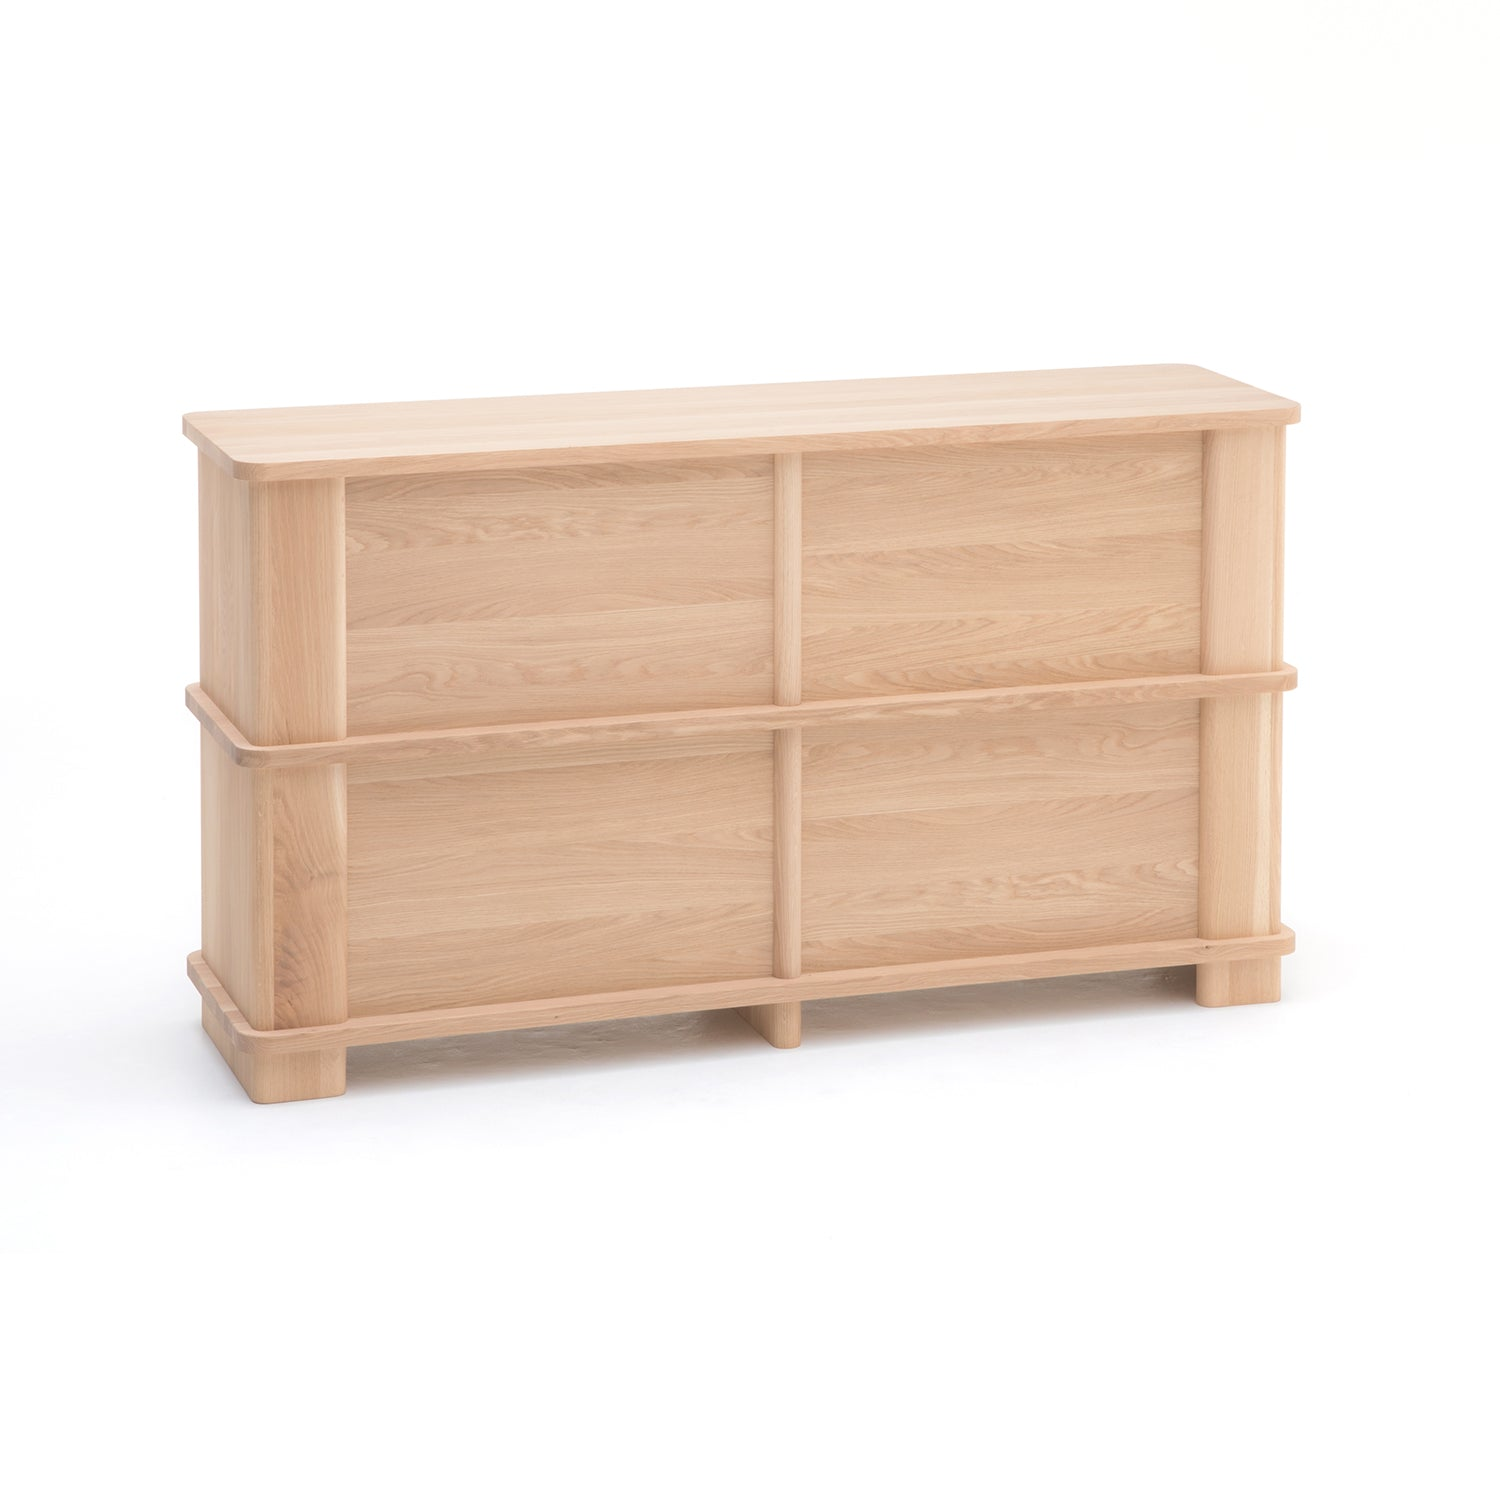 Prop Sideboard: Large + Pure Oak